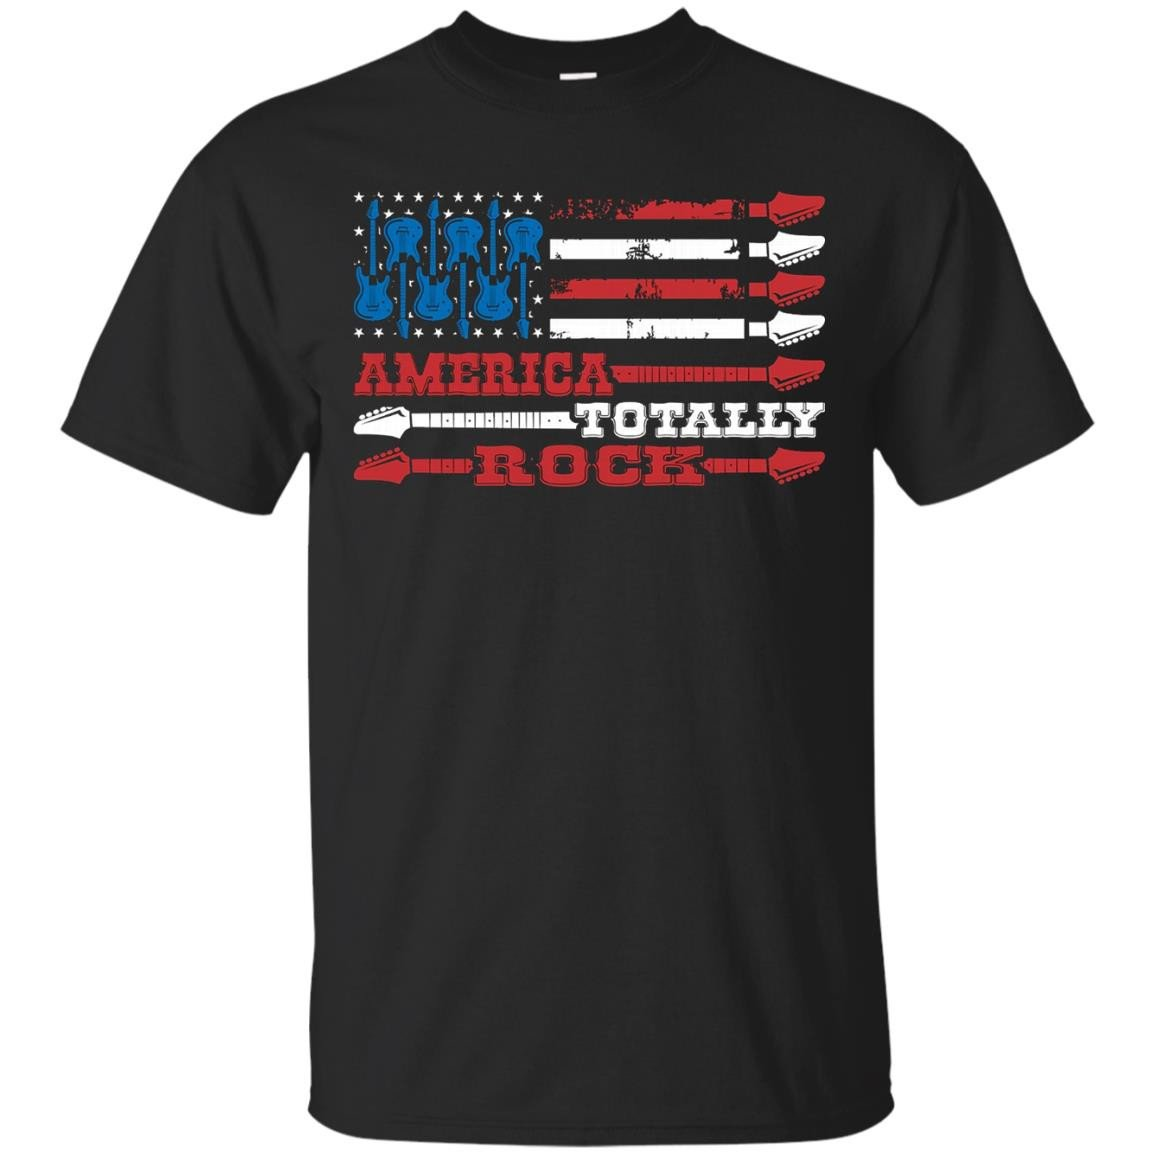 American Flag with Guitars, America Totally Rock T Shirt - T-Shirt